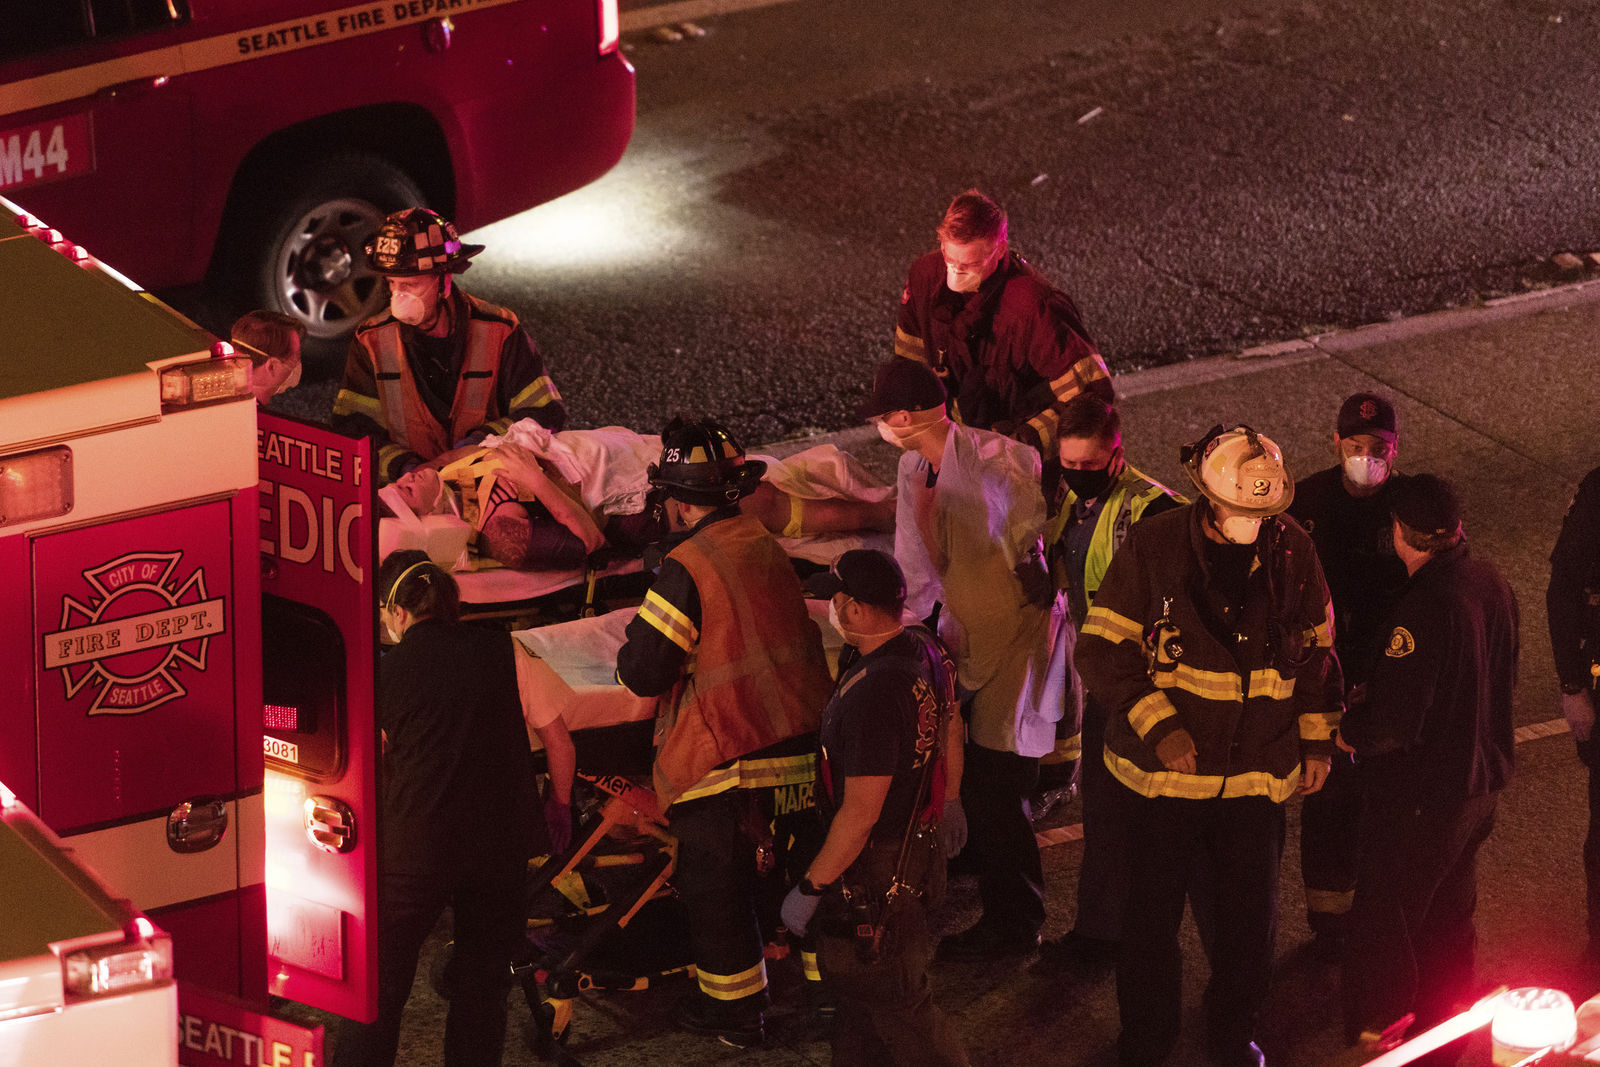 Emergency workers bring an injured person to an ambulance after a driver sped through a protest-related closure on the Interstate 5 freeway in Seattle, authorities said early Saturday, July 4, 2020. (James Anderson via AP)